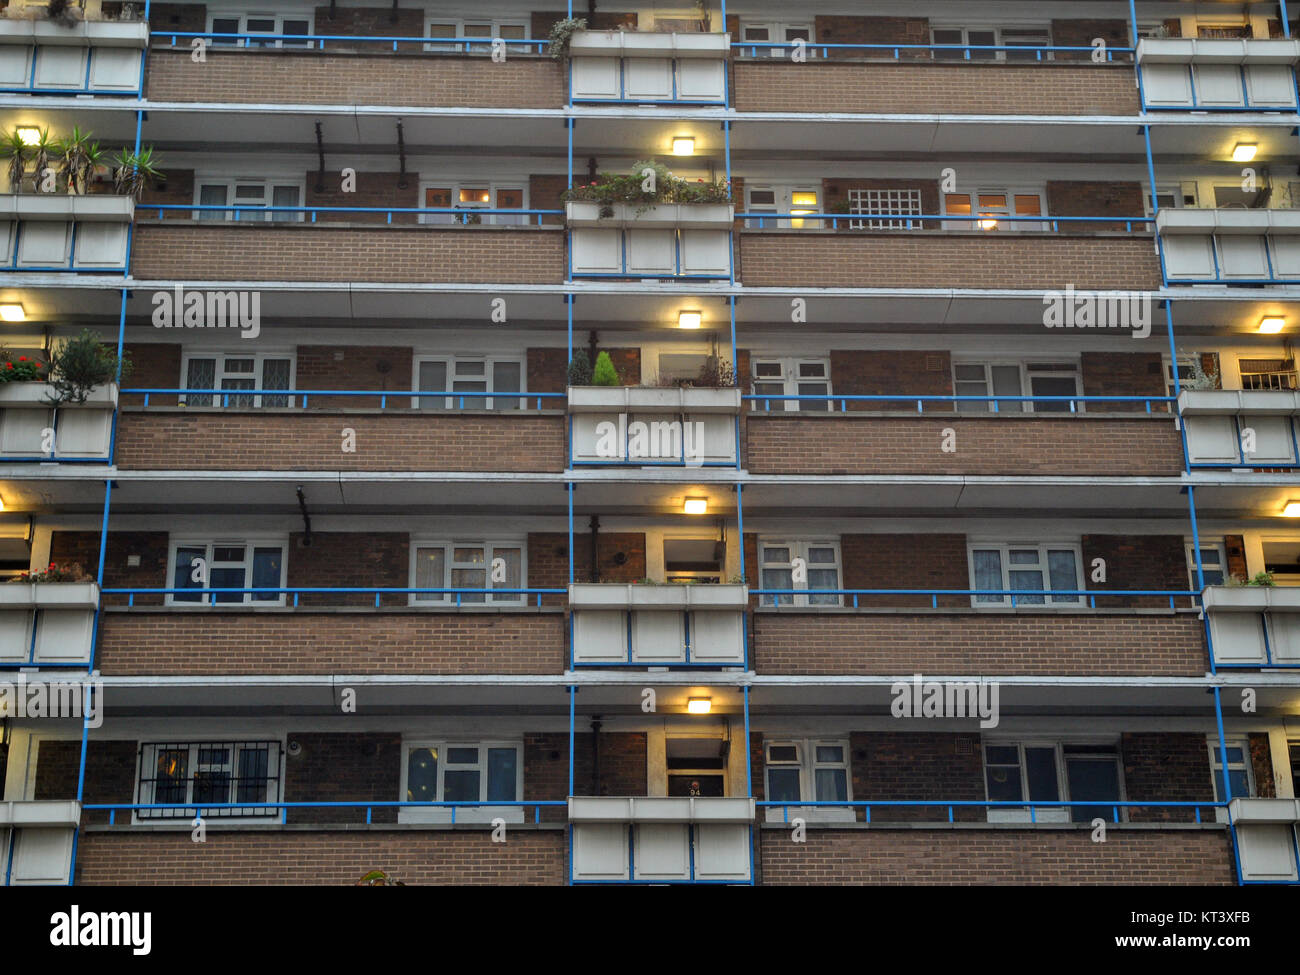 a block of vintage or 1950's local authority or council flats in the centre of London on a large estate close - Stock Image